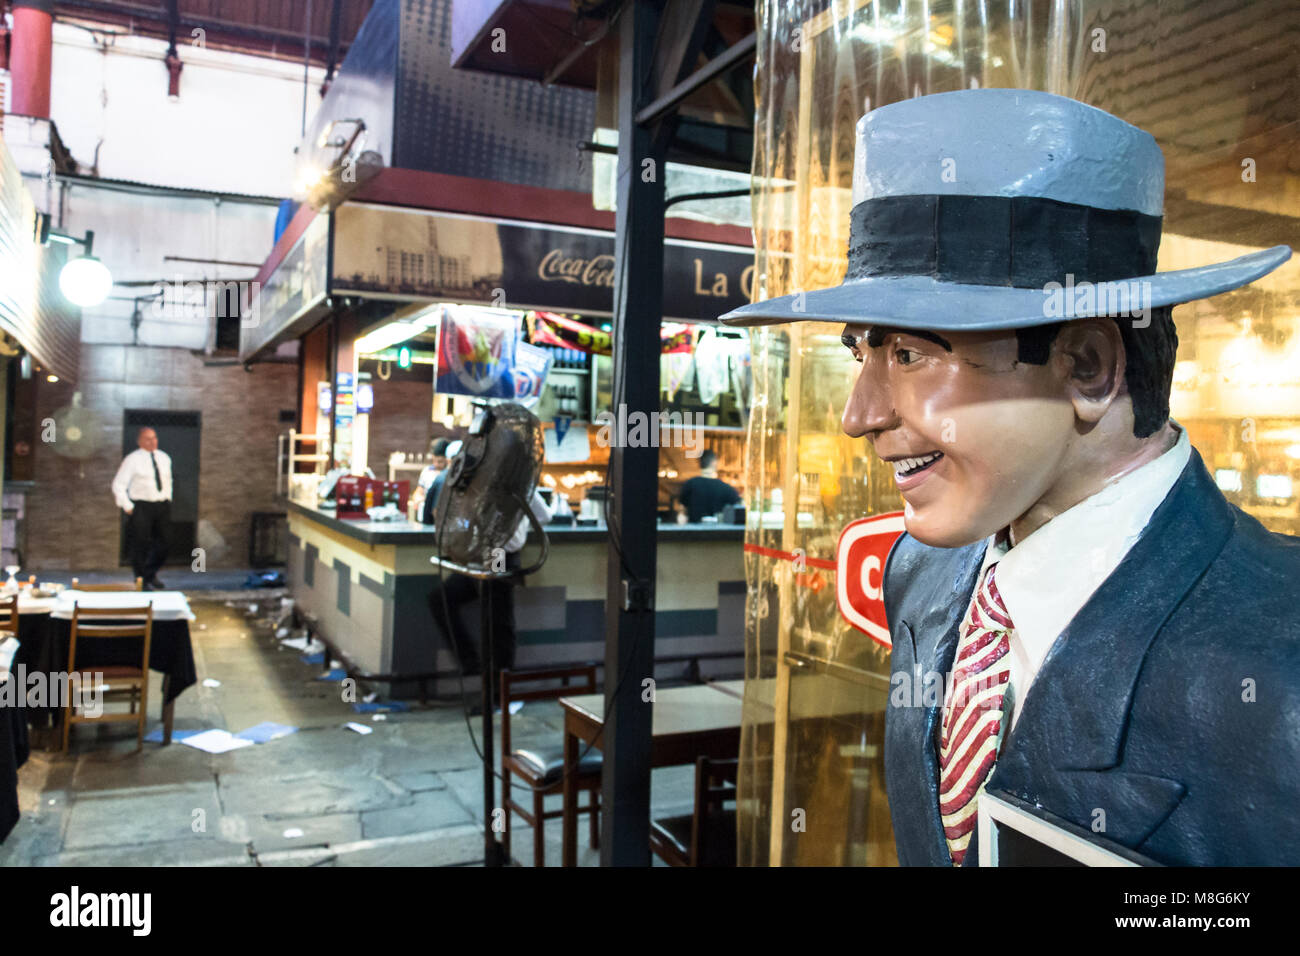 Montevideo, Uruguay - February 25th, 2018:  A live size figure of Carlos Gardel, a famous tango singer from Argentina - Stock Image